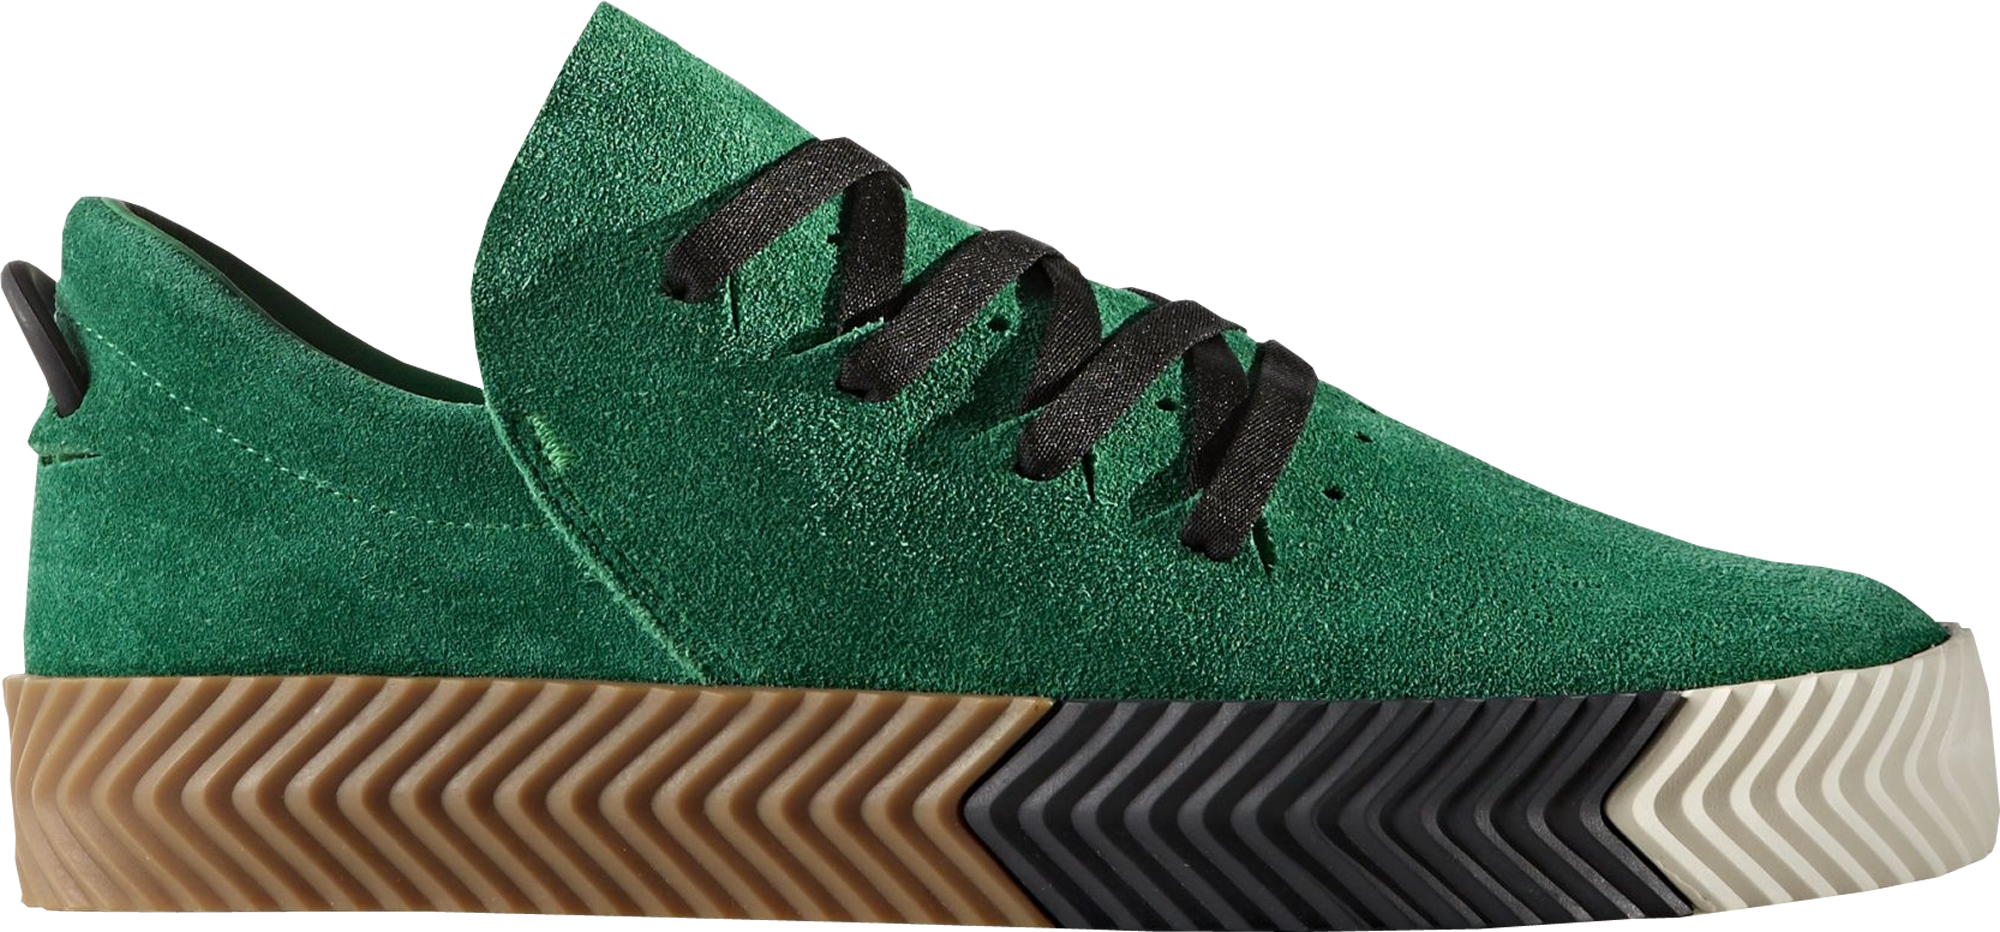 alexander wang x adidas aw skate green. Black Bedroom Furniture Sets. Home Design Ideas